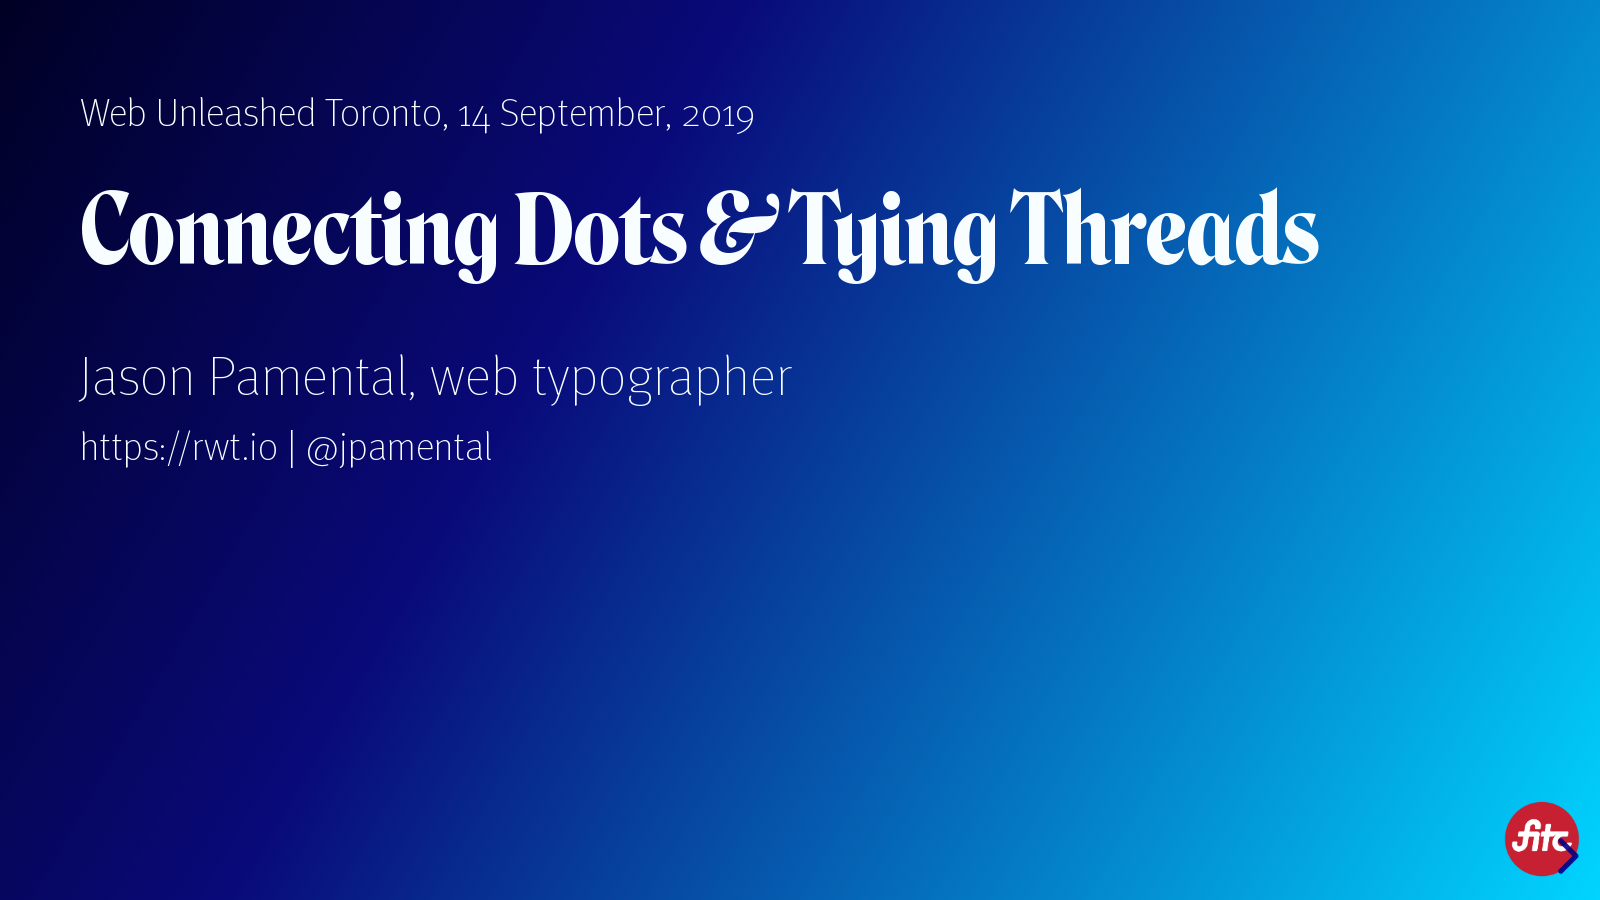 Connecting Dots & Tying Threads: Web Unleashed Wrap